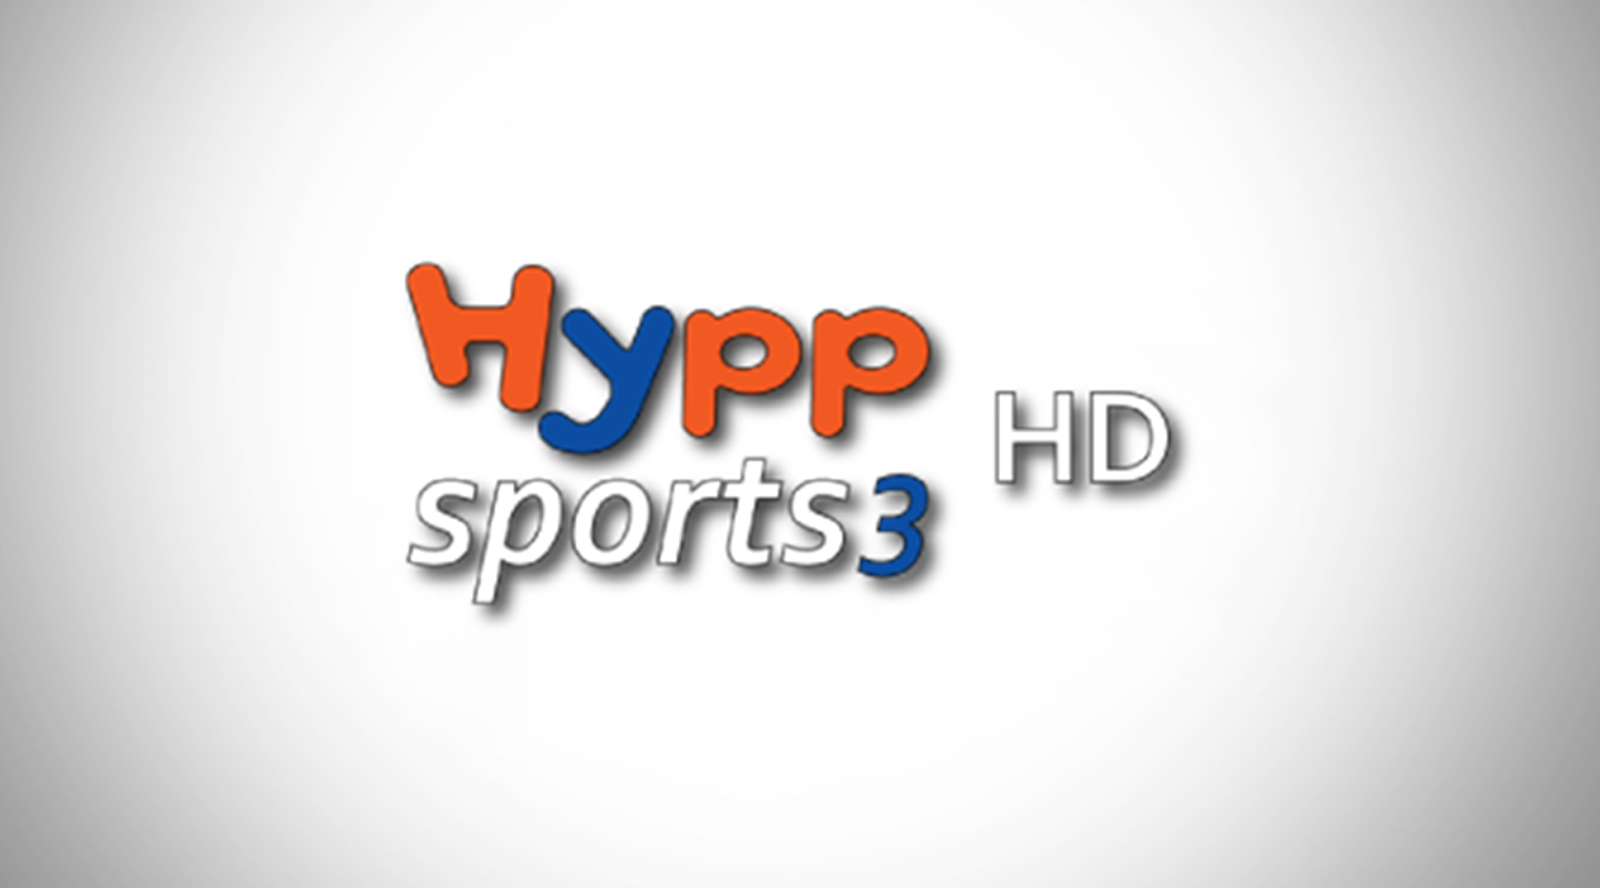 HyppSports3 HD Live Streaming